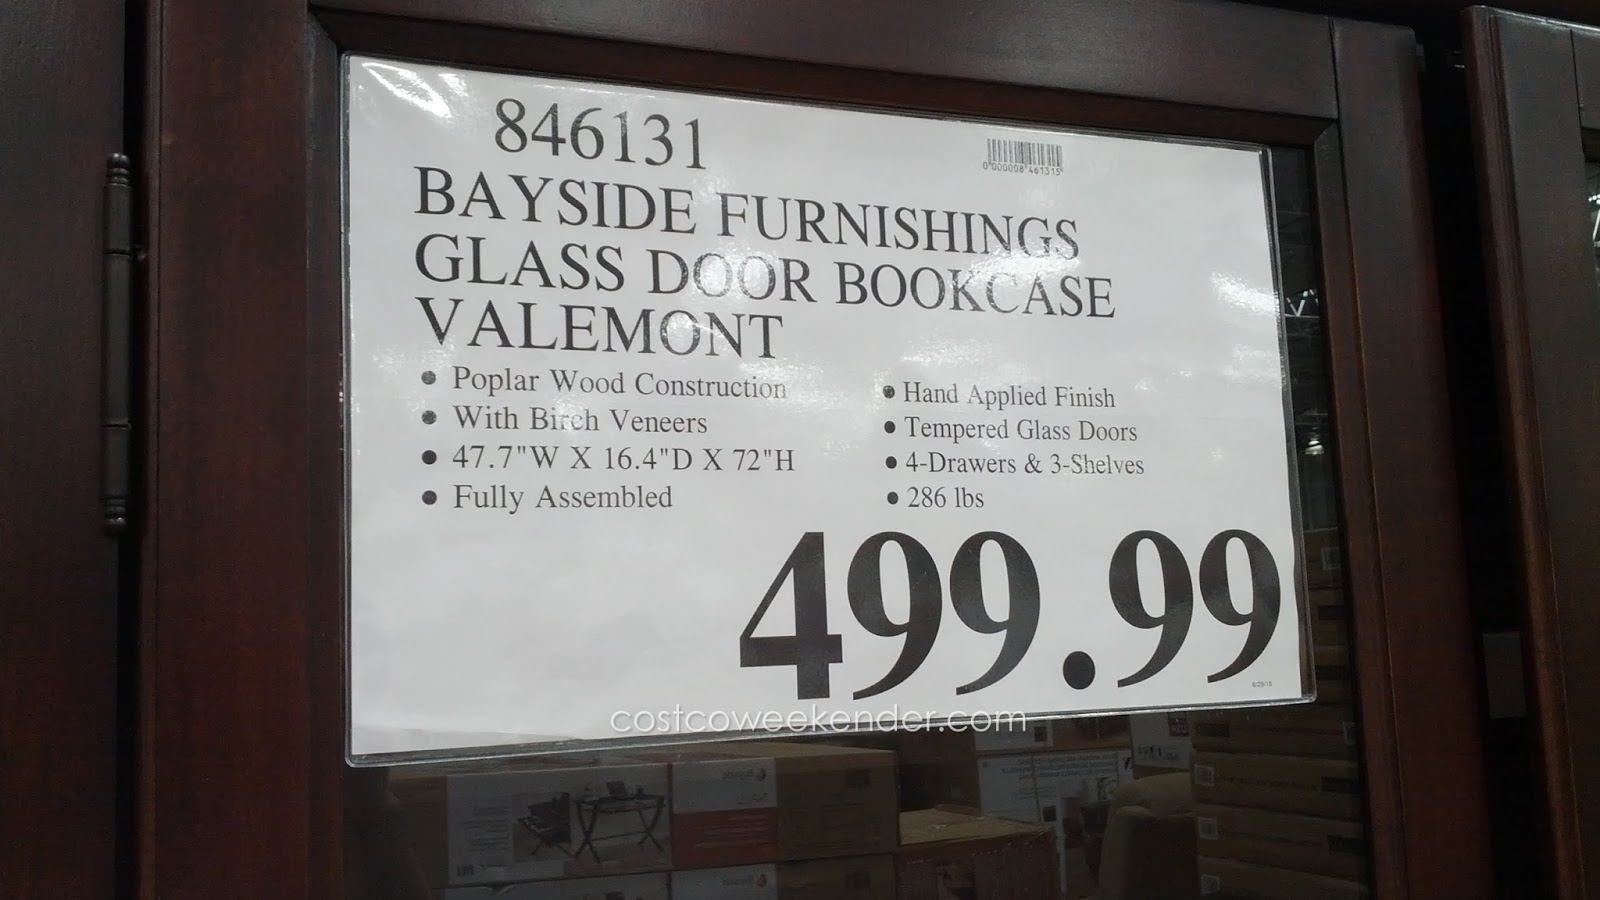 900 #28201C Deal For Bayside Furnishings Valemont Glass Door Bookcase At Costco pic Costco Doors 47611600